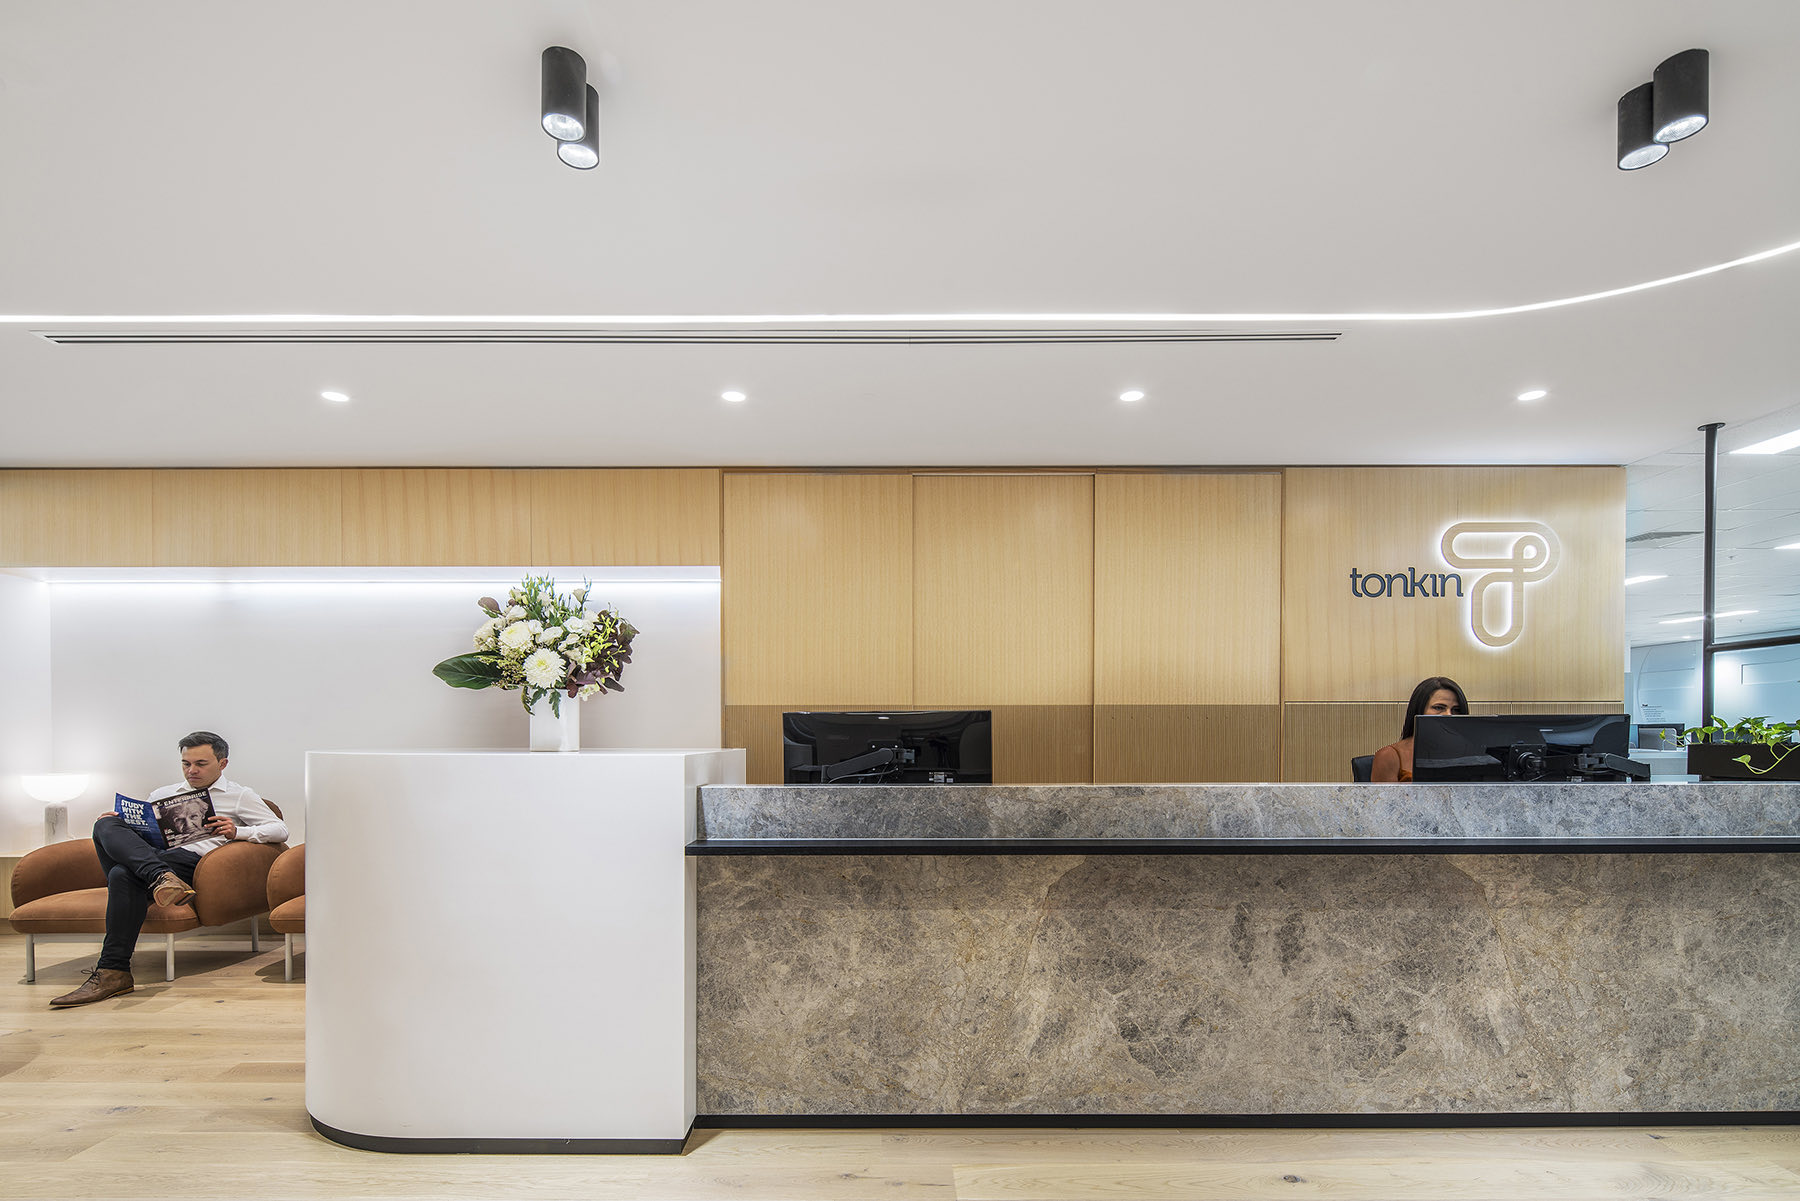 tonkling-consulting-adelaide-office-4